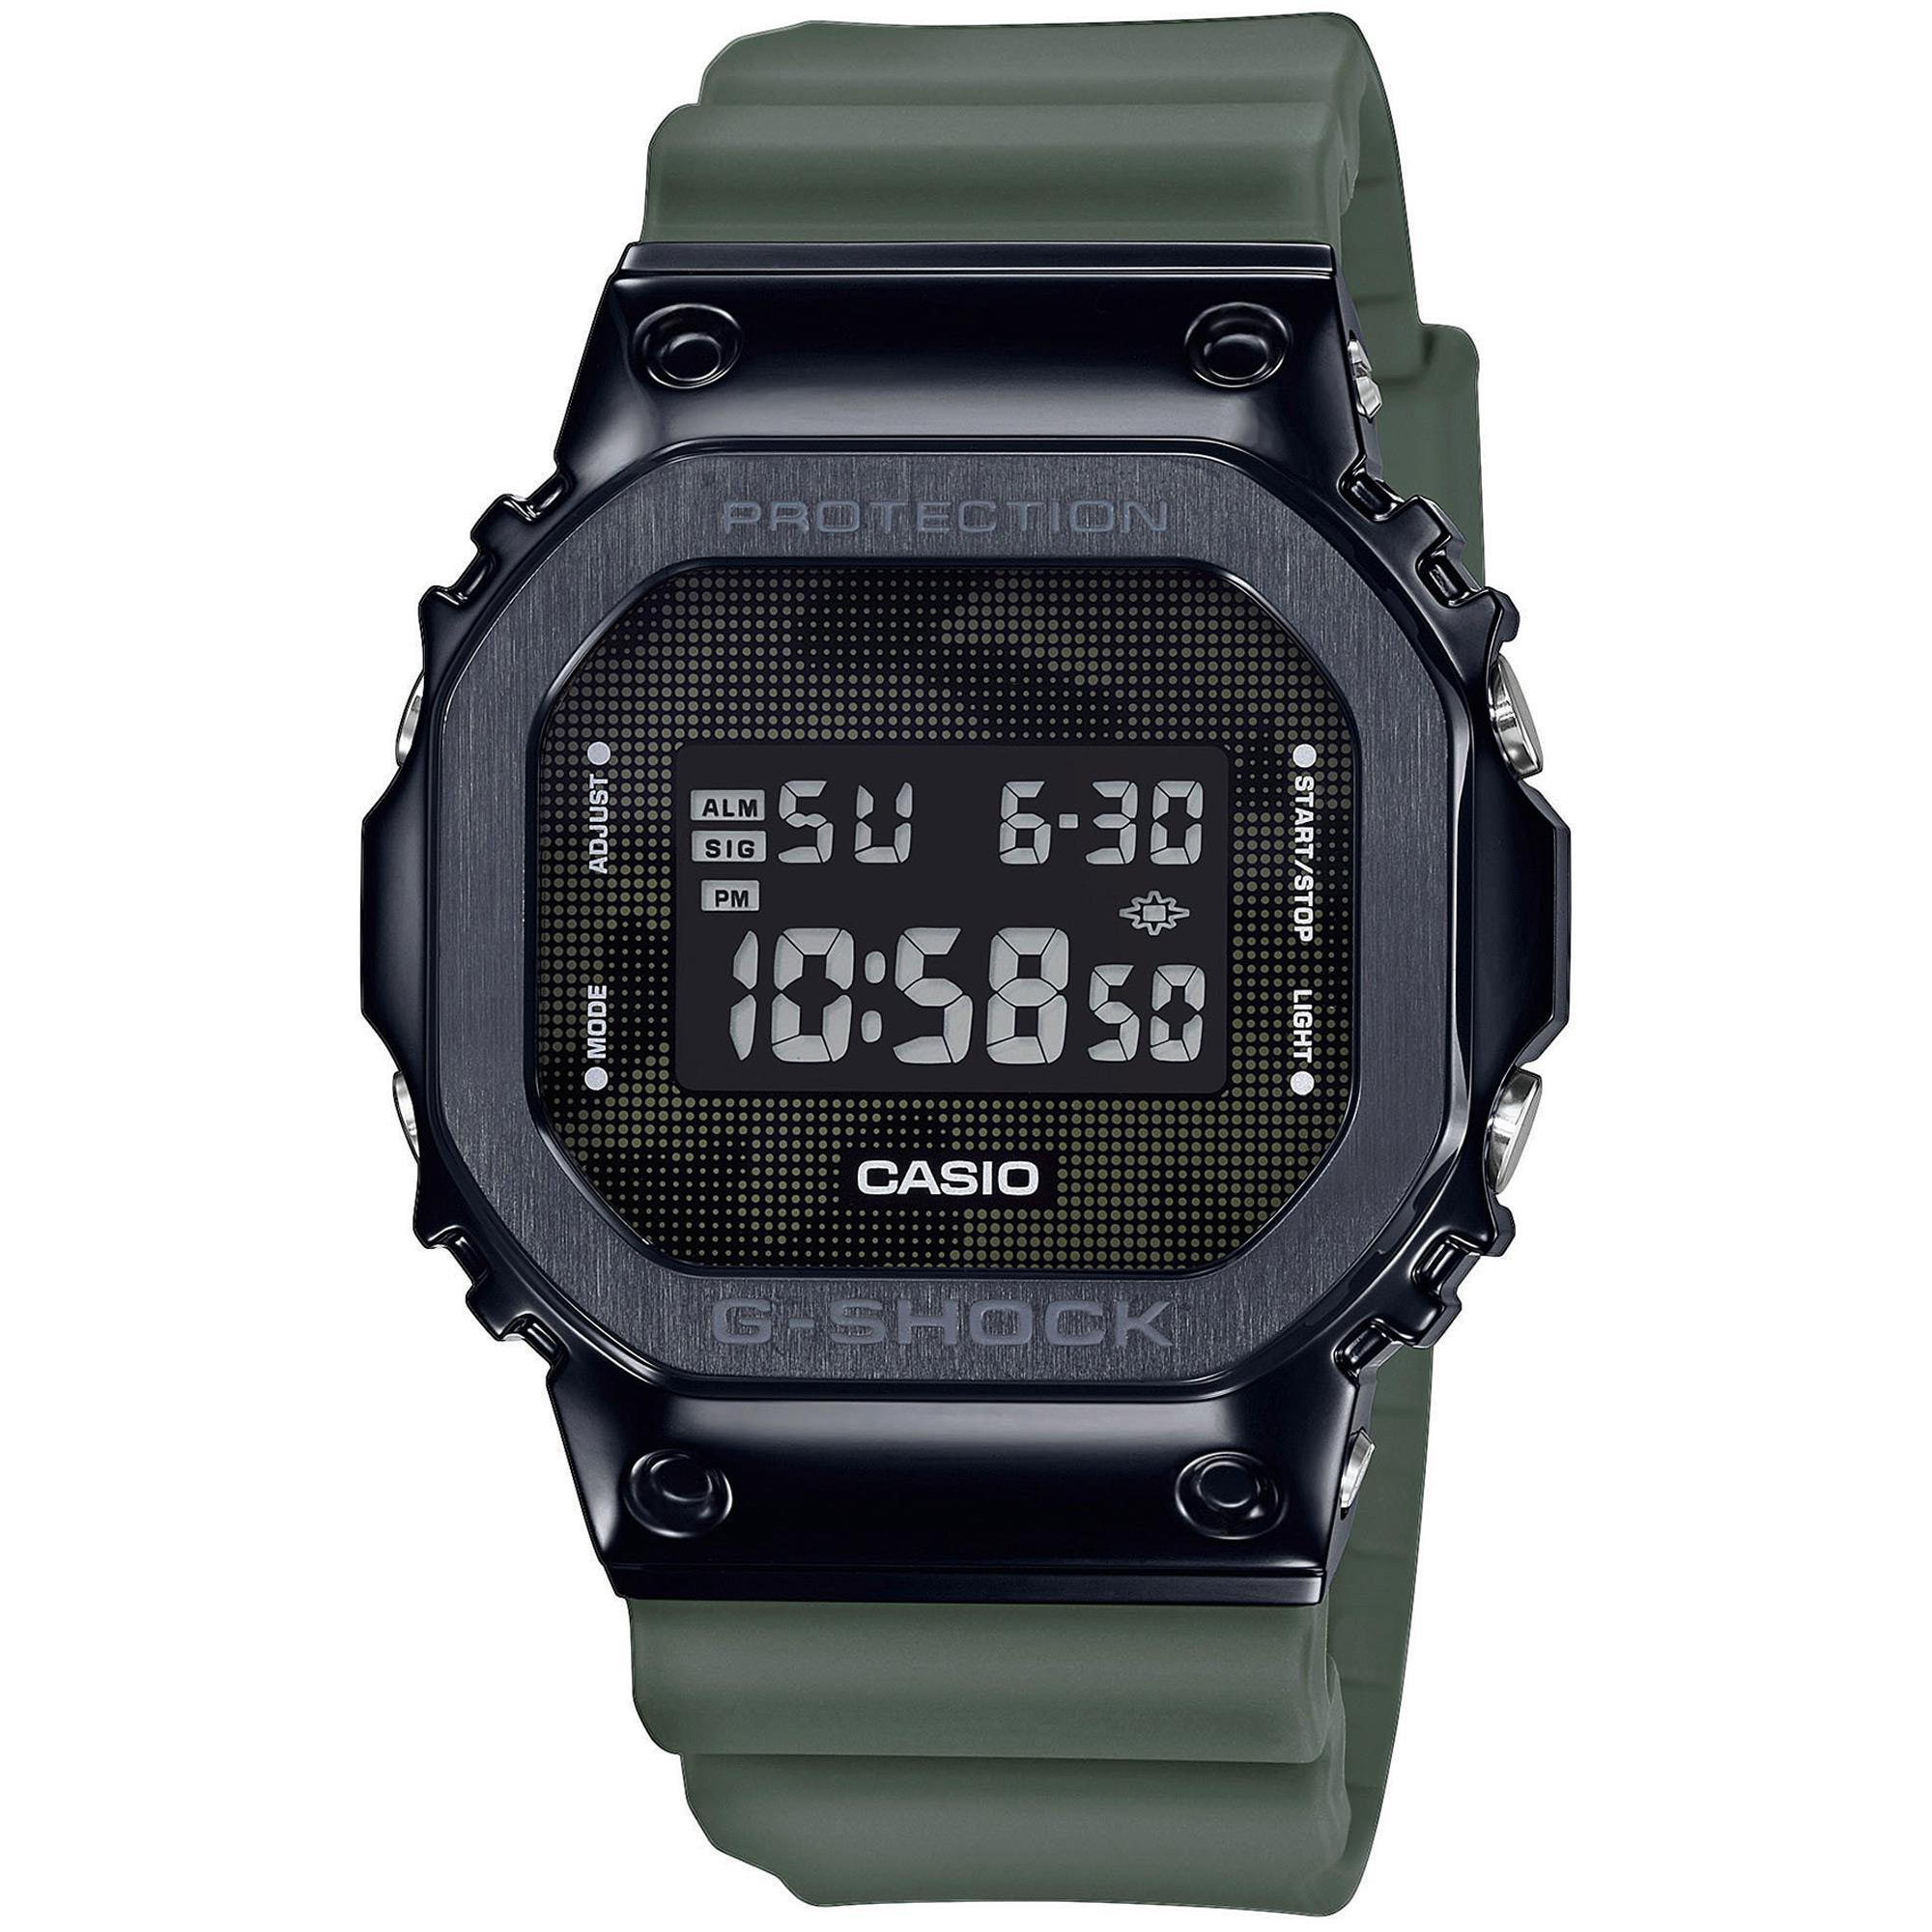 CASIO GM-5600B-3ER G-SHOCK THE ORIGIN - CASIO